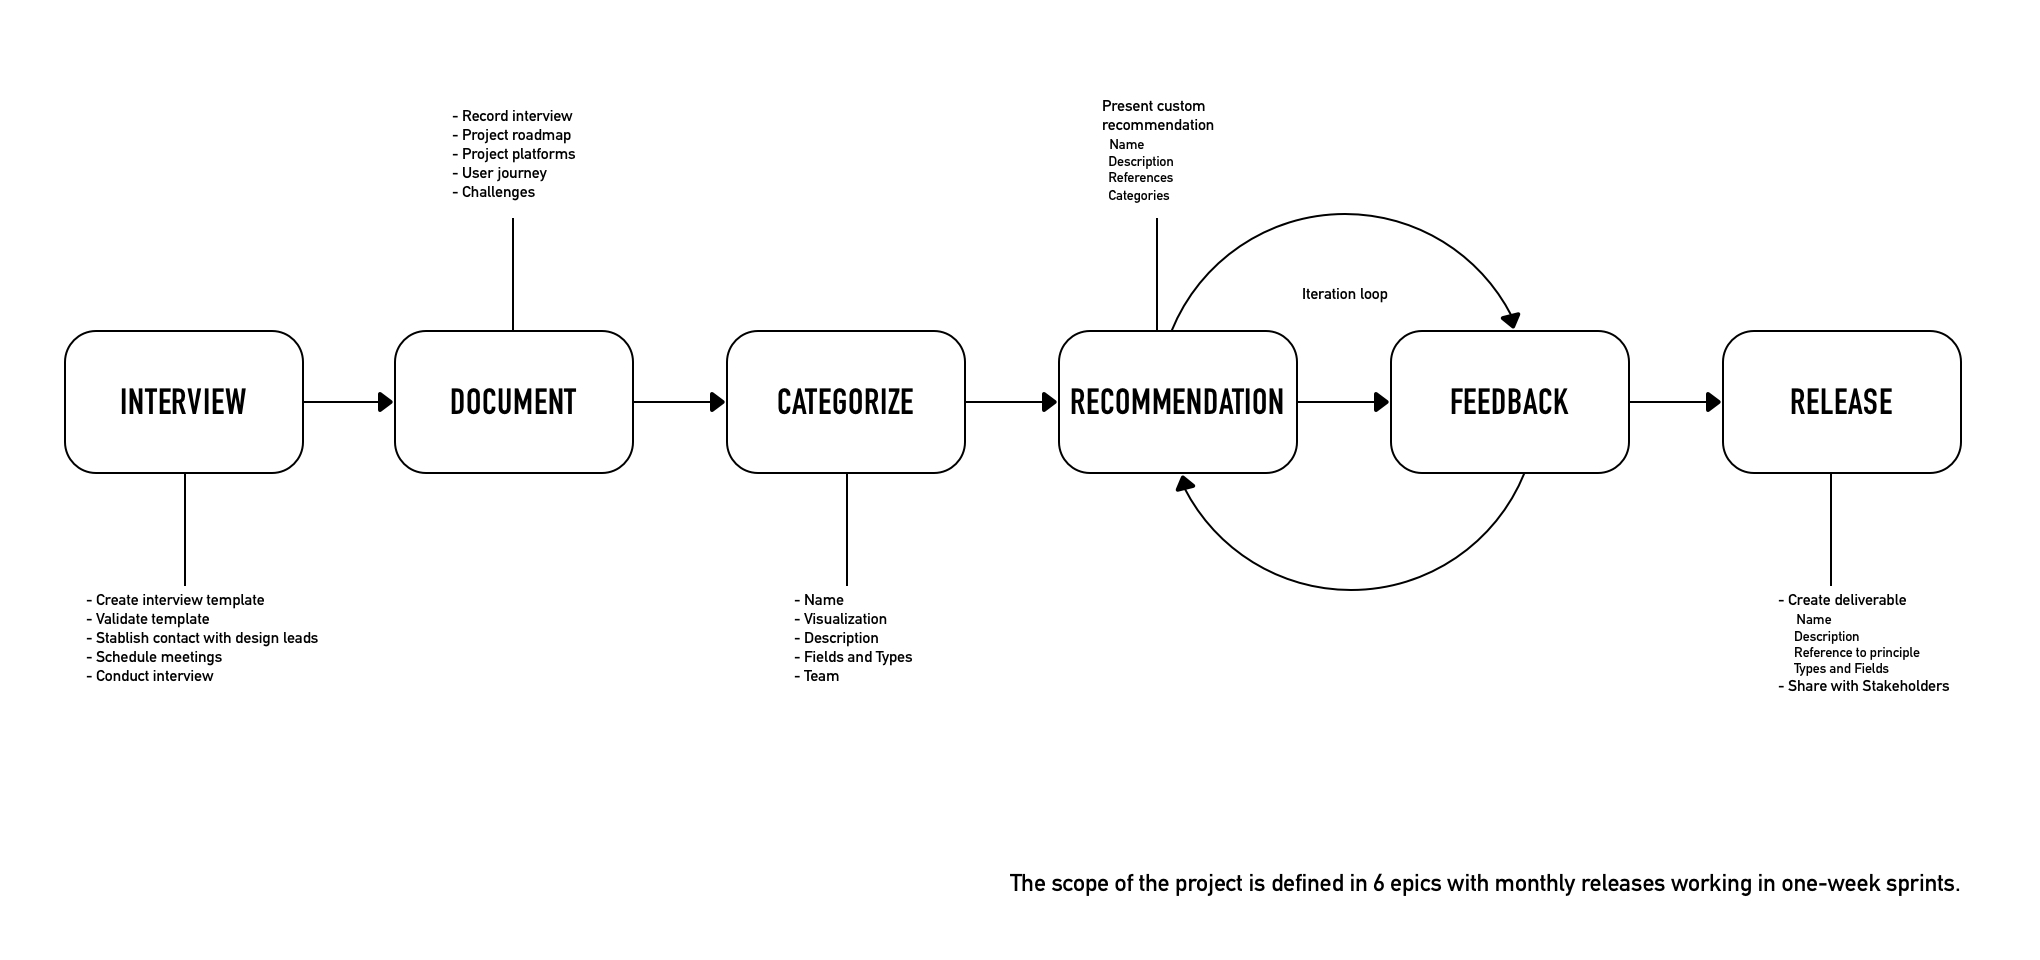 Process flow for the interview and recommendation